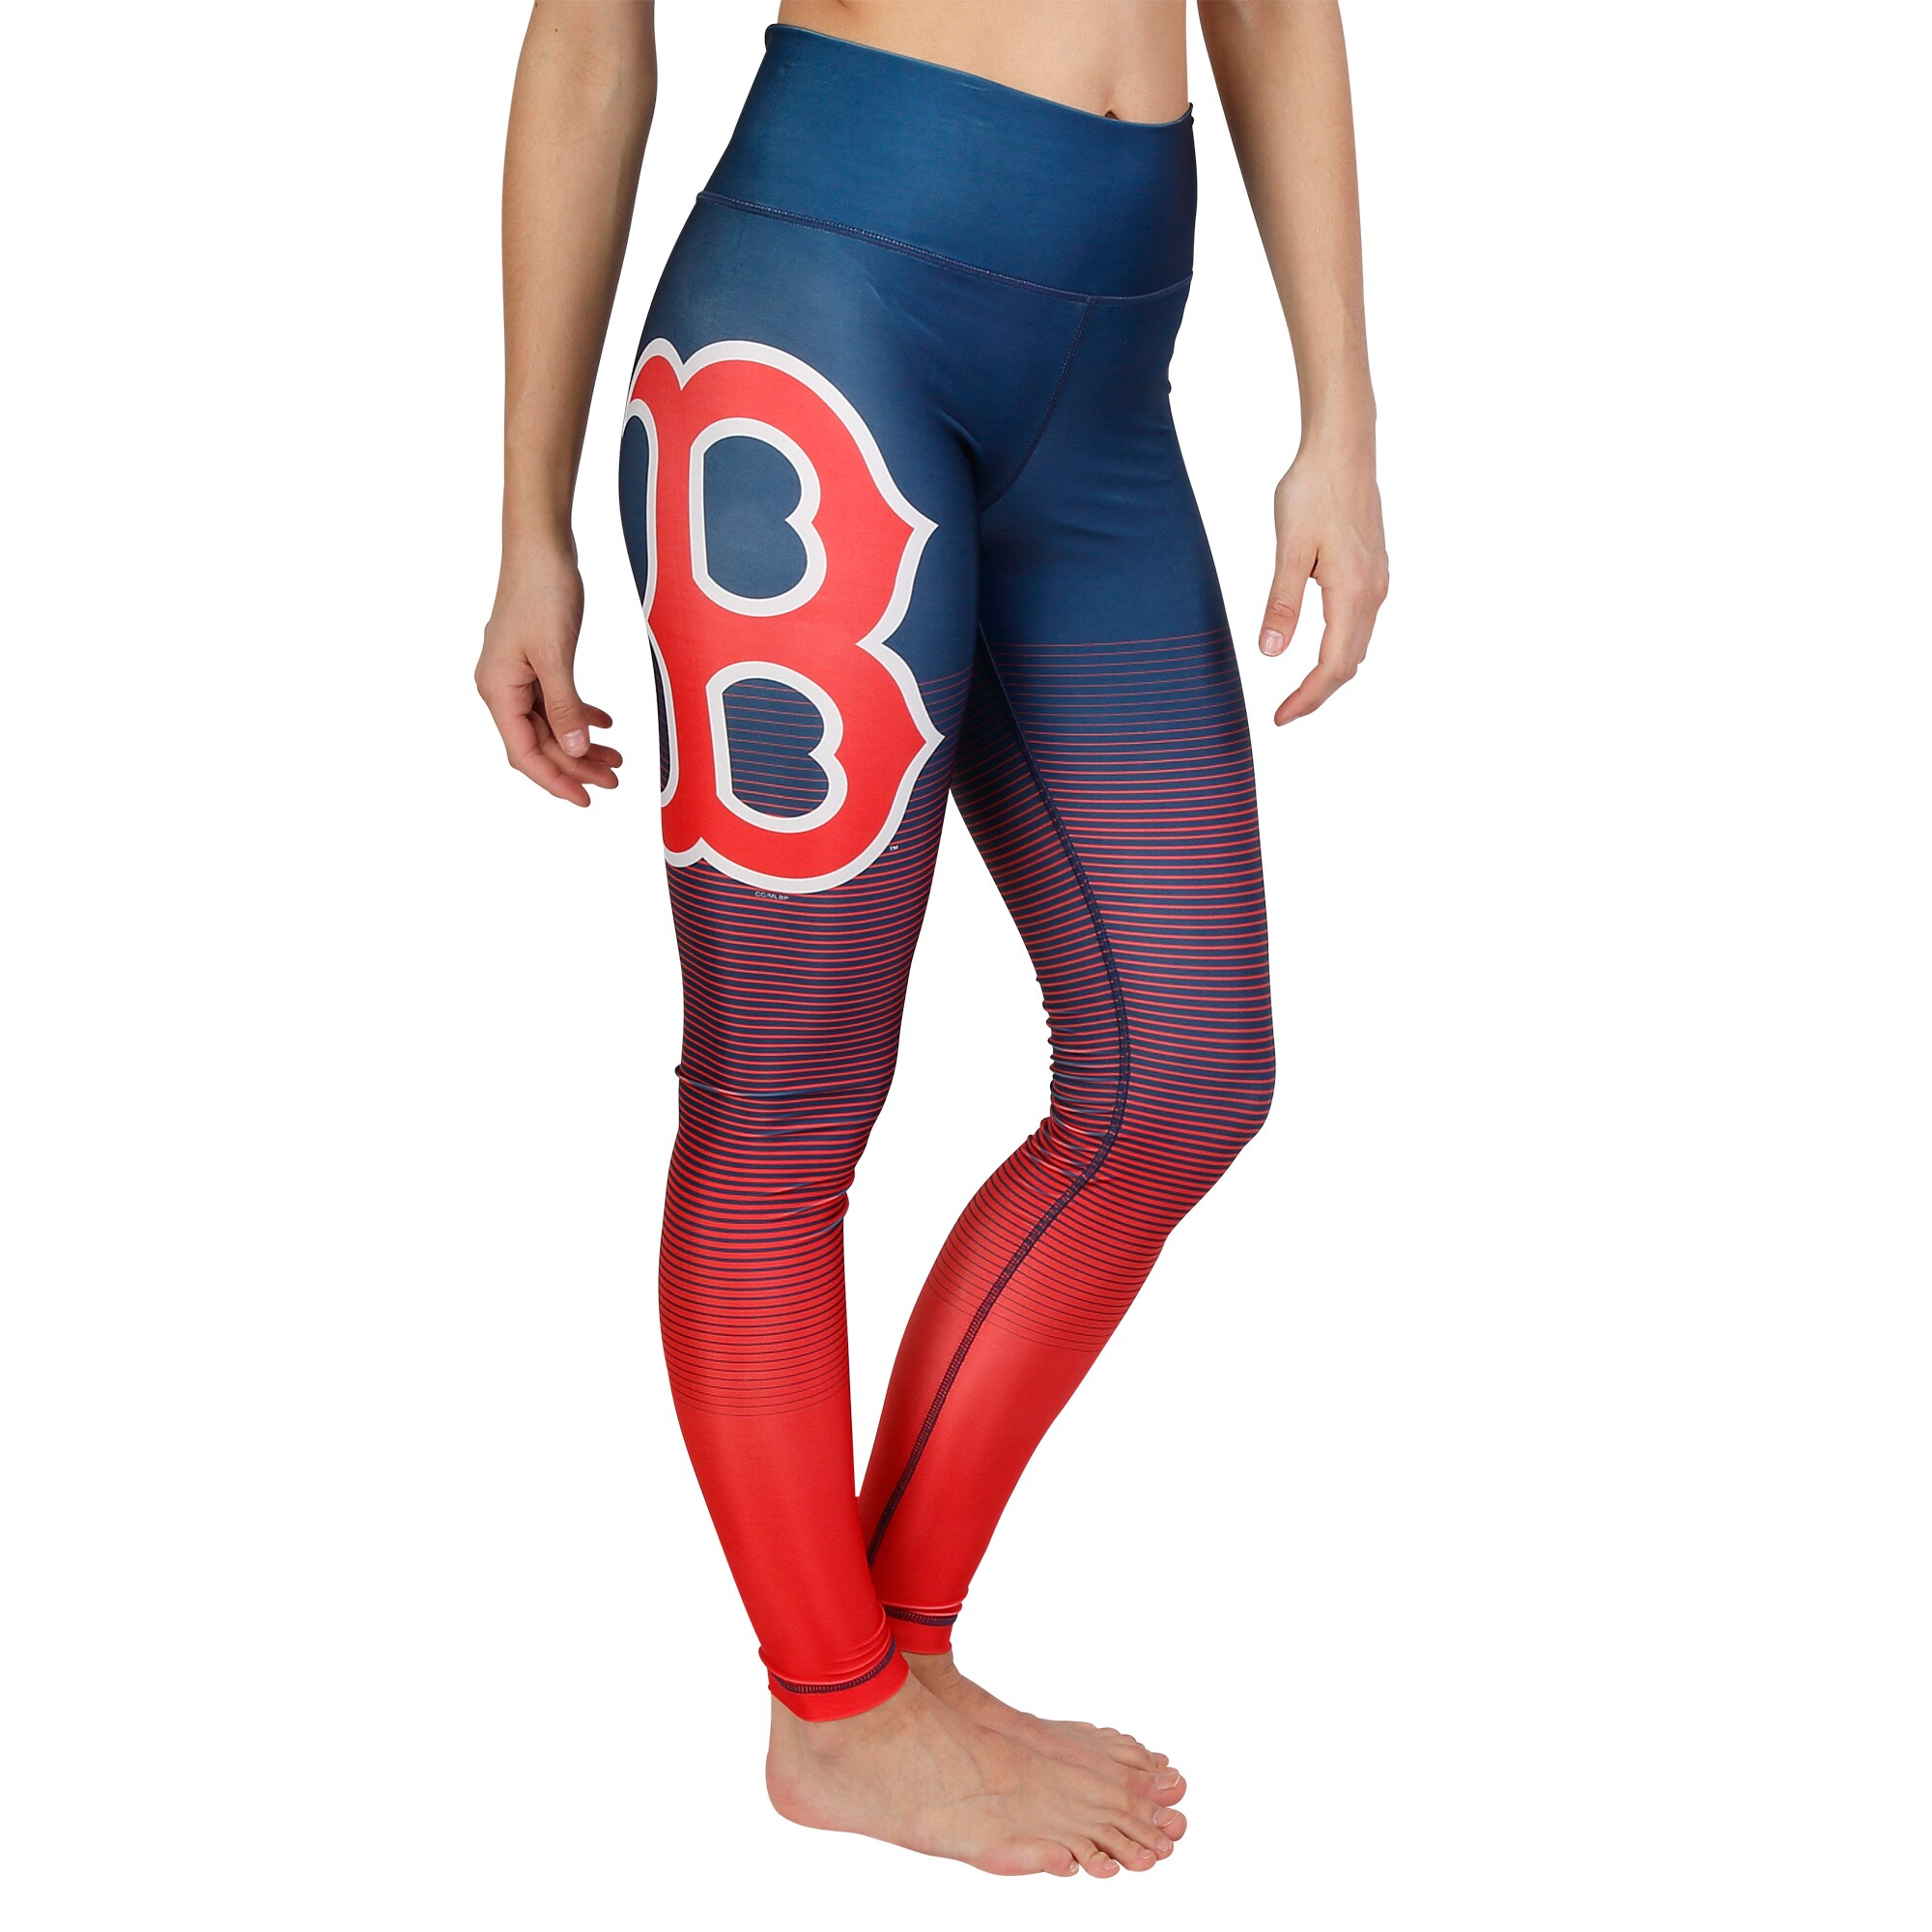 Boston Red Sox Concepts Sport Women's Fringe Sublimated Leggings - Navy/Red